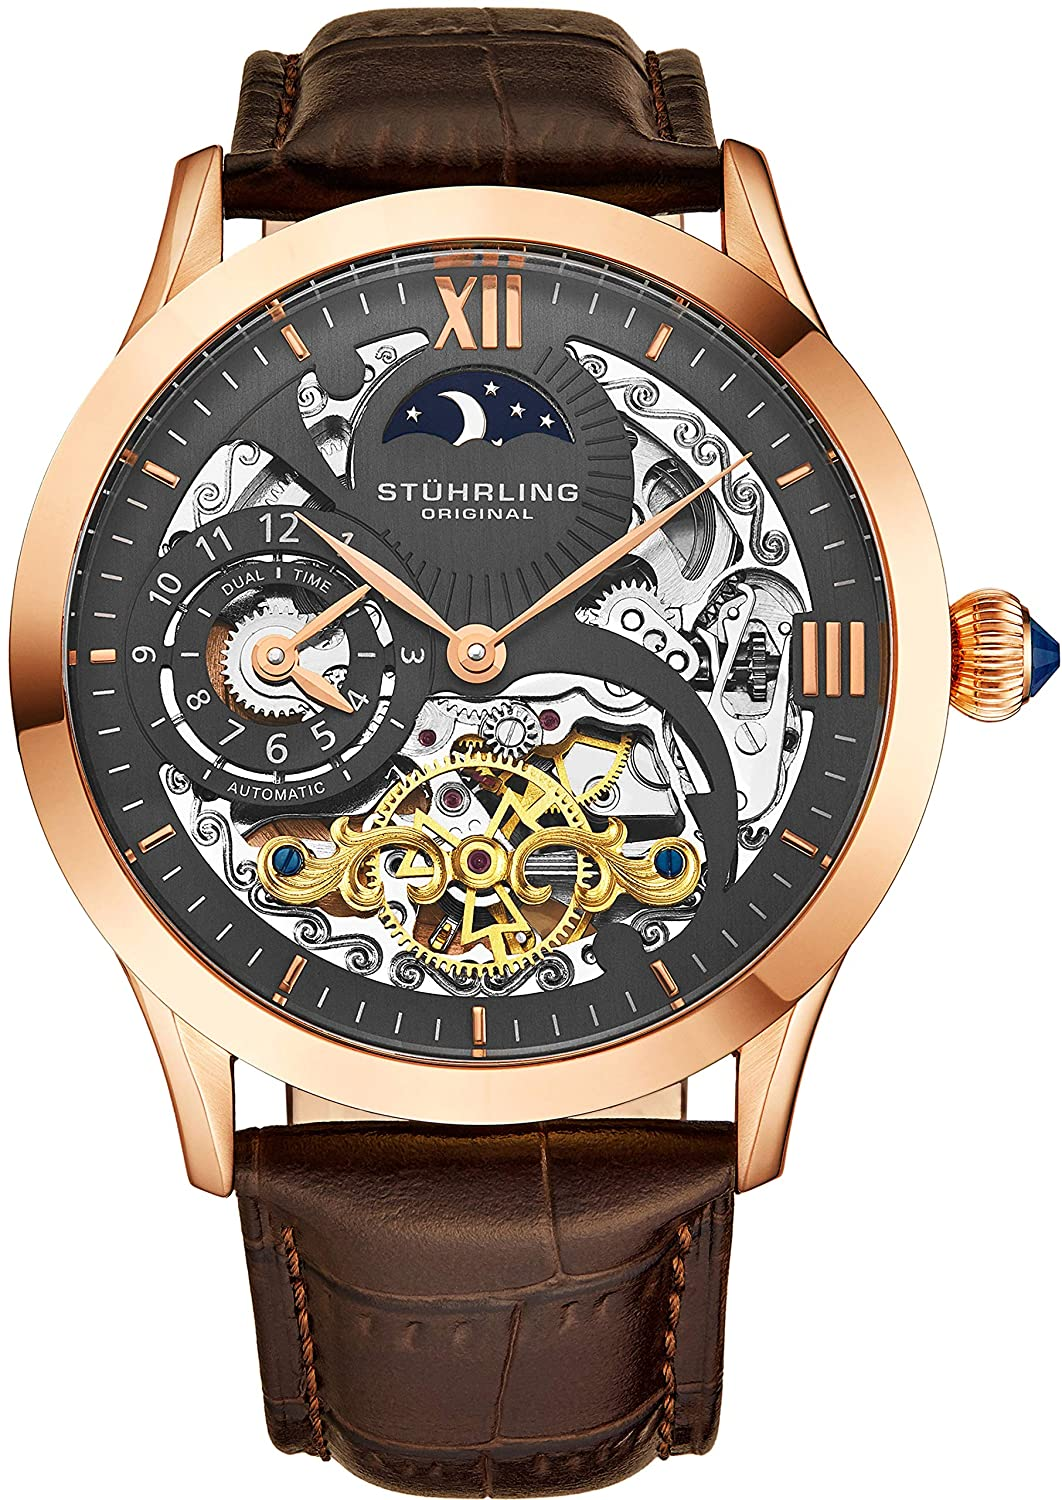 33f80a5f8 Amazon.com: Stuhrling Original Mens Rose Gold Tone Stainless Steel Automatic  Watch, White Skeleton Dial, Rose Gold Accents, Dual Time, AM/PM Sun Moon,  ...